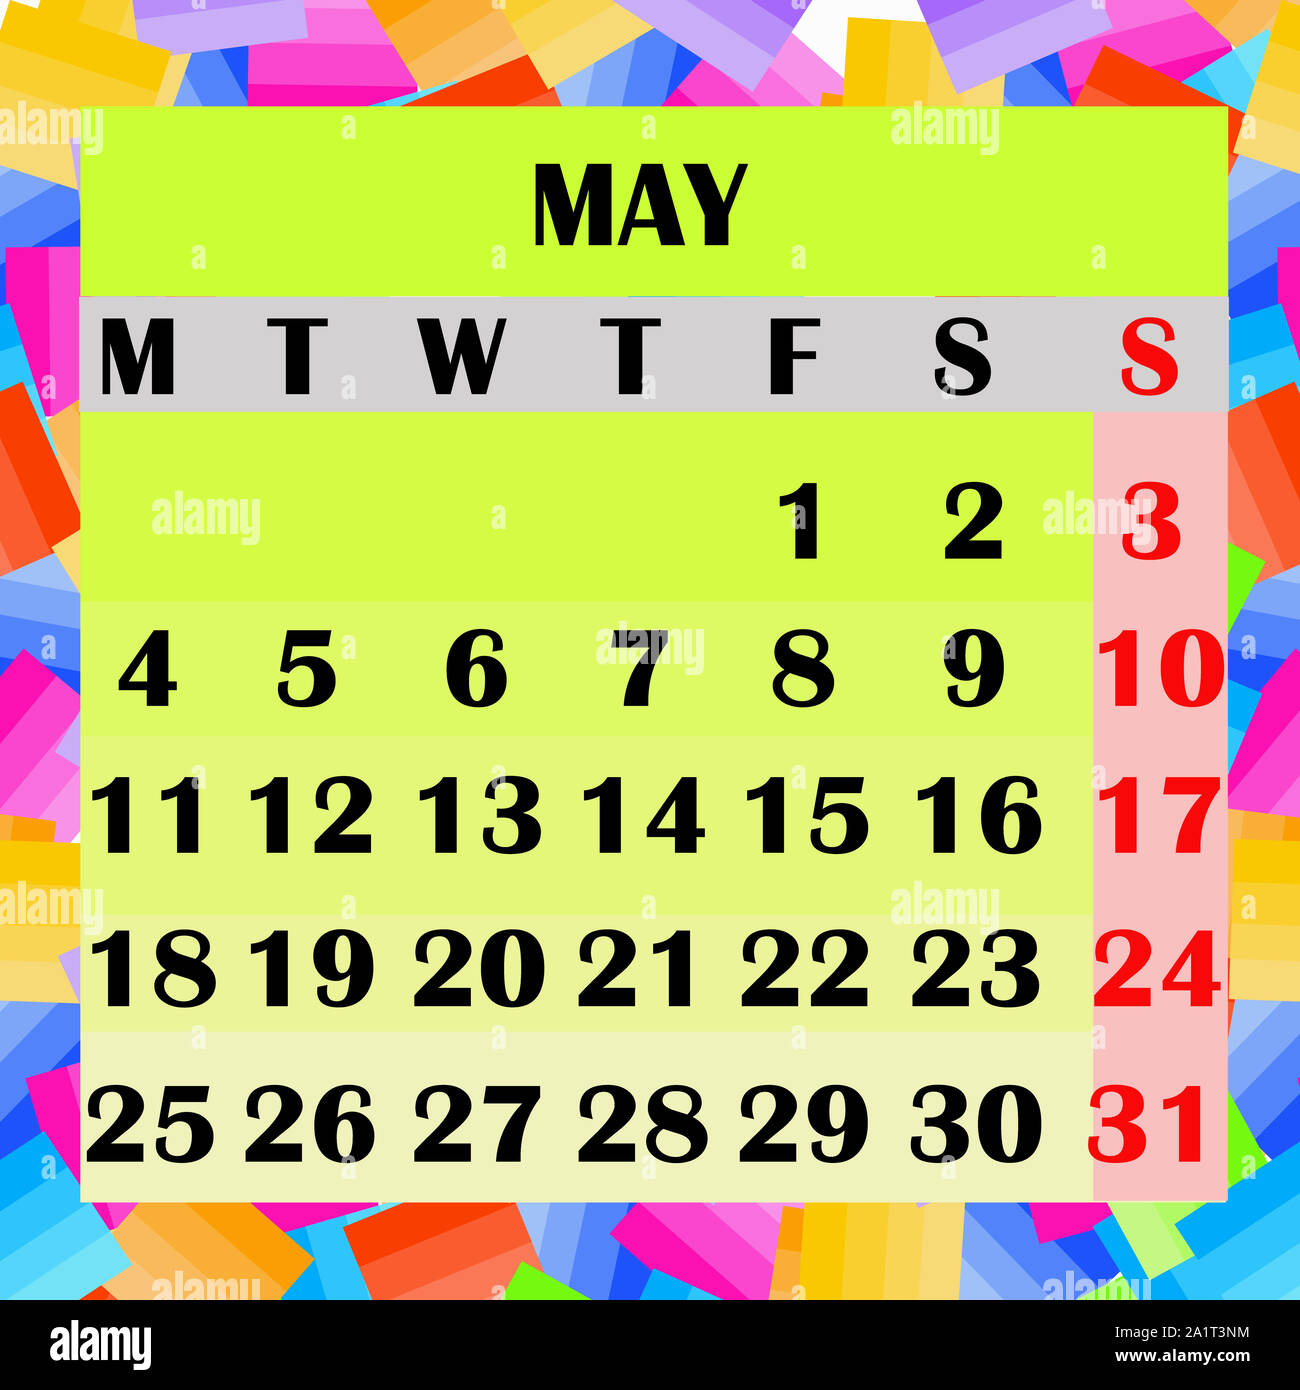 Calendrier Moi De Mai 2020.Calendar Month May Photos Calendar Month May Images Alamy